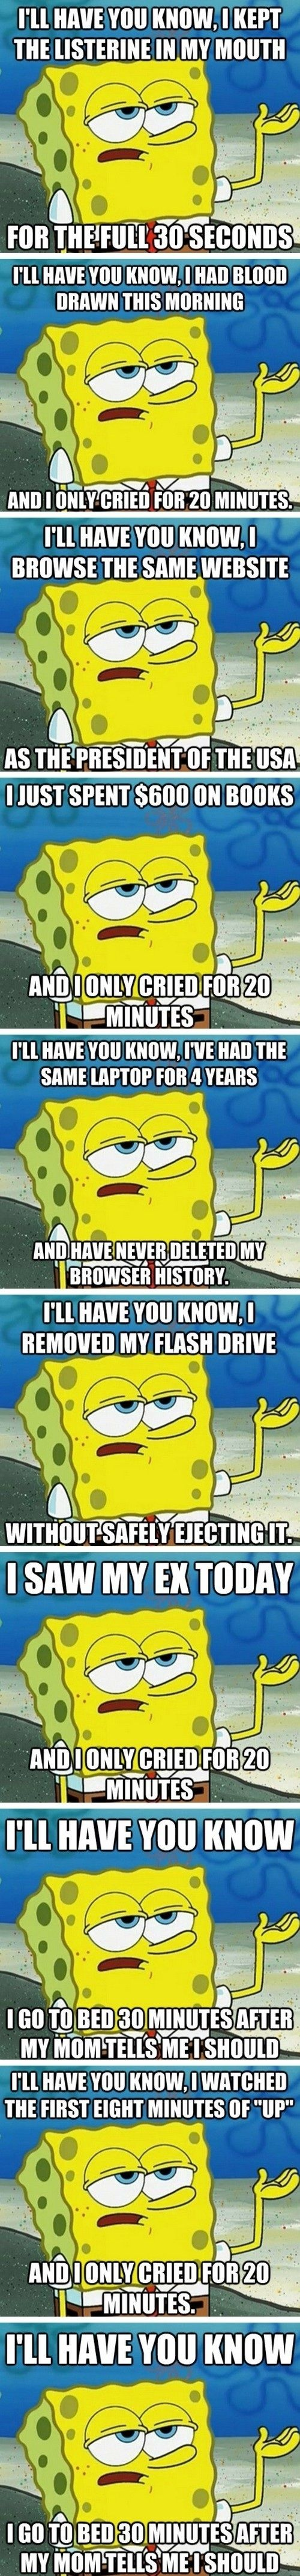 Tough Guy Spongebob  - funny pictures #funnypictures